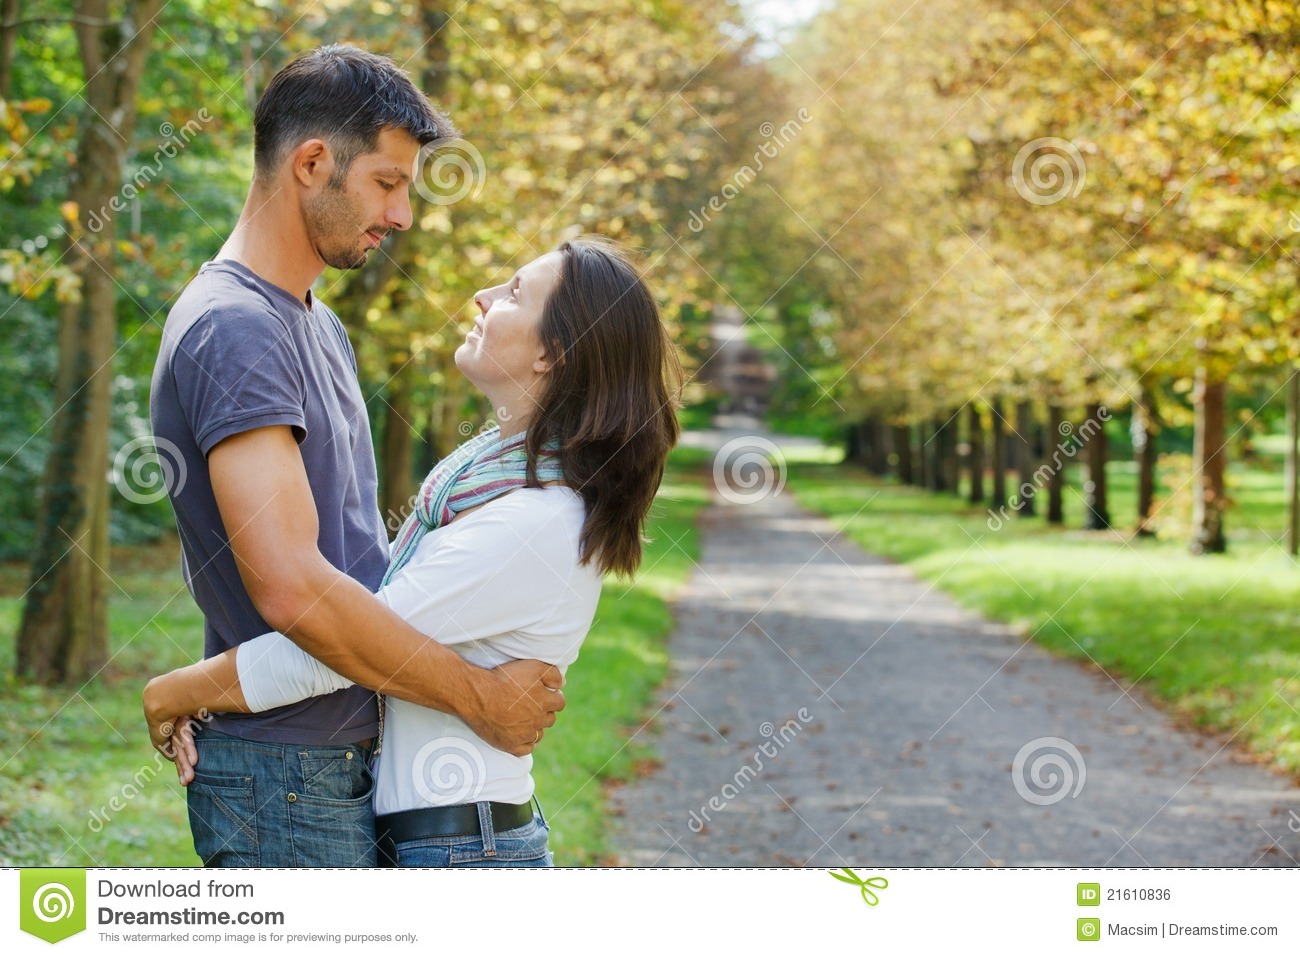 Royalty Free Stock Image  Young Couple Walking in autumn parkYoung Couple Walking In The Park